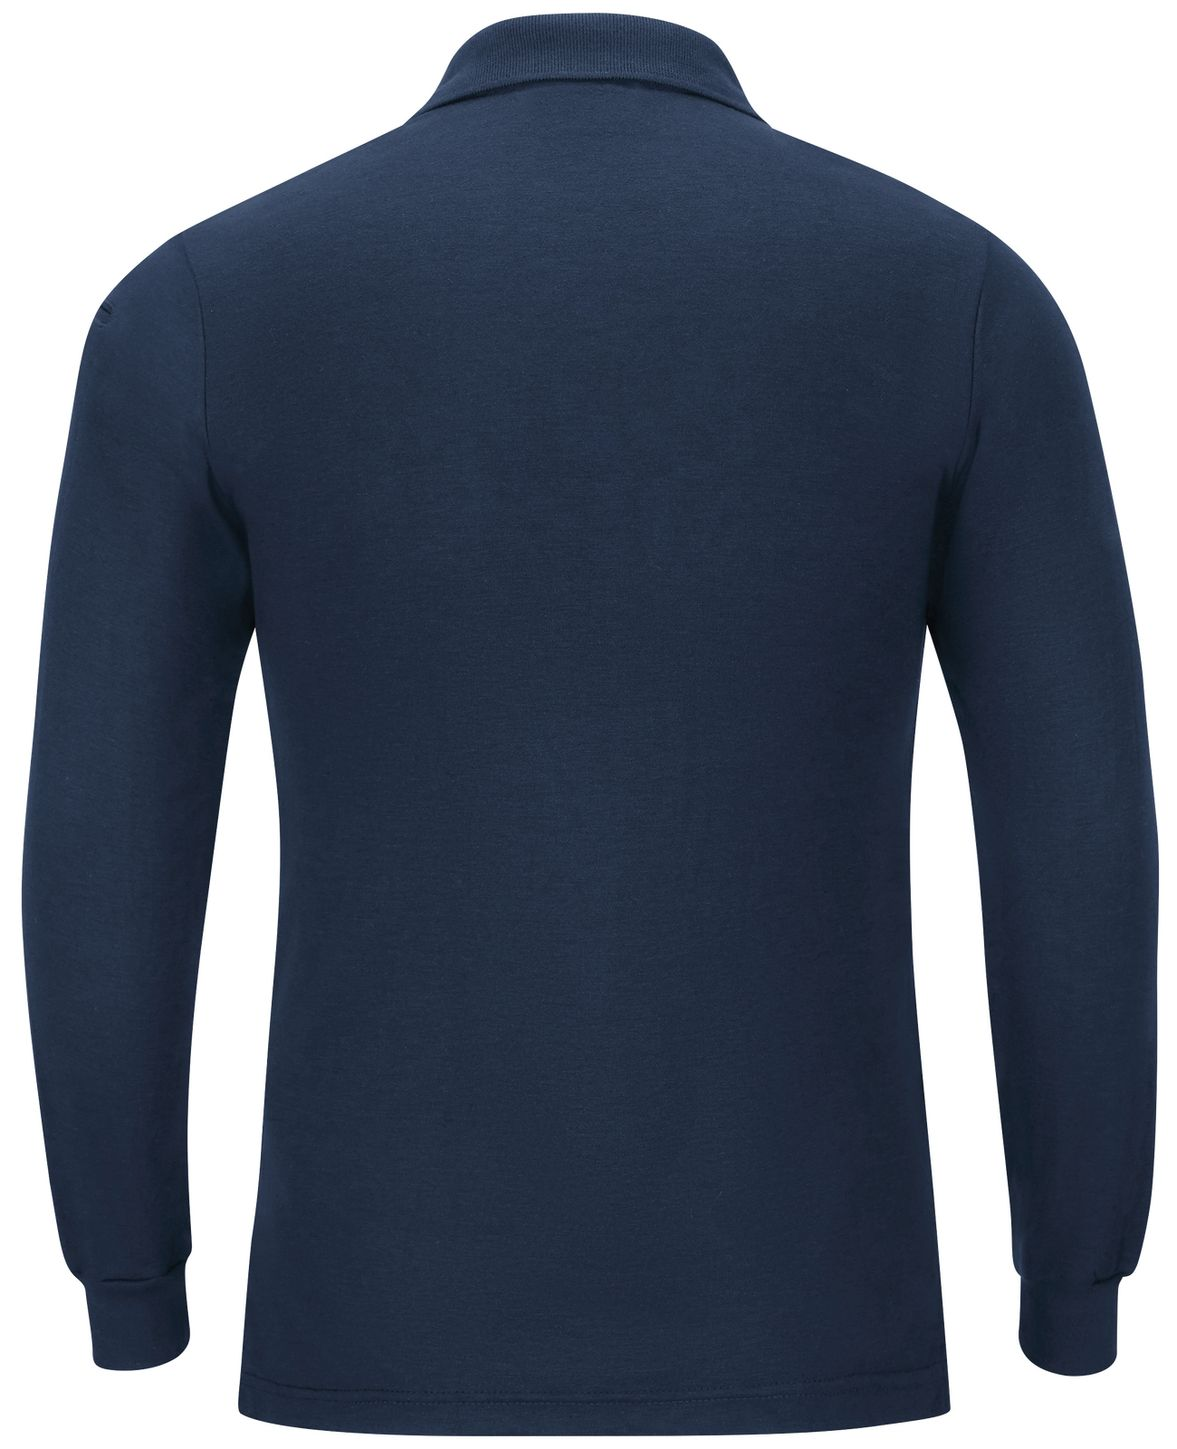 Workrite FR Polo Shirt FT20 Long Sleeve Fire Station Wear Navy Back